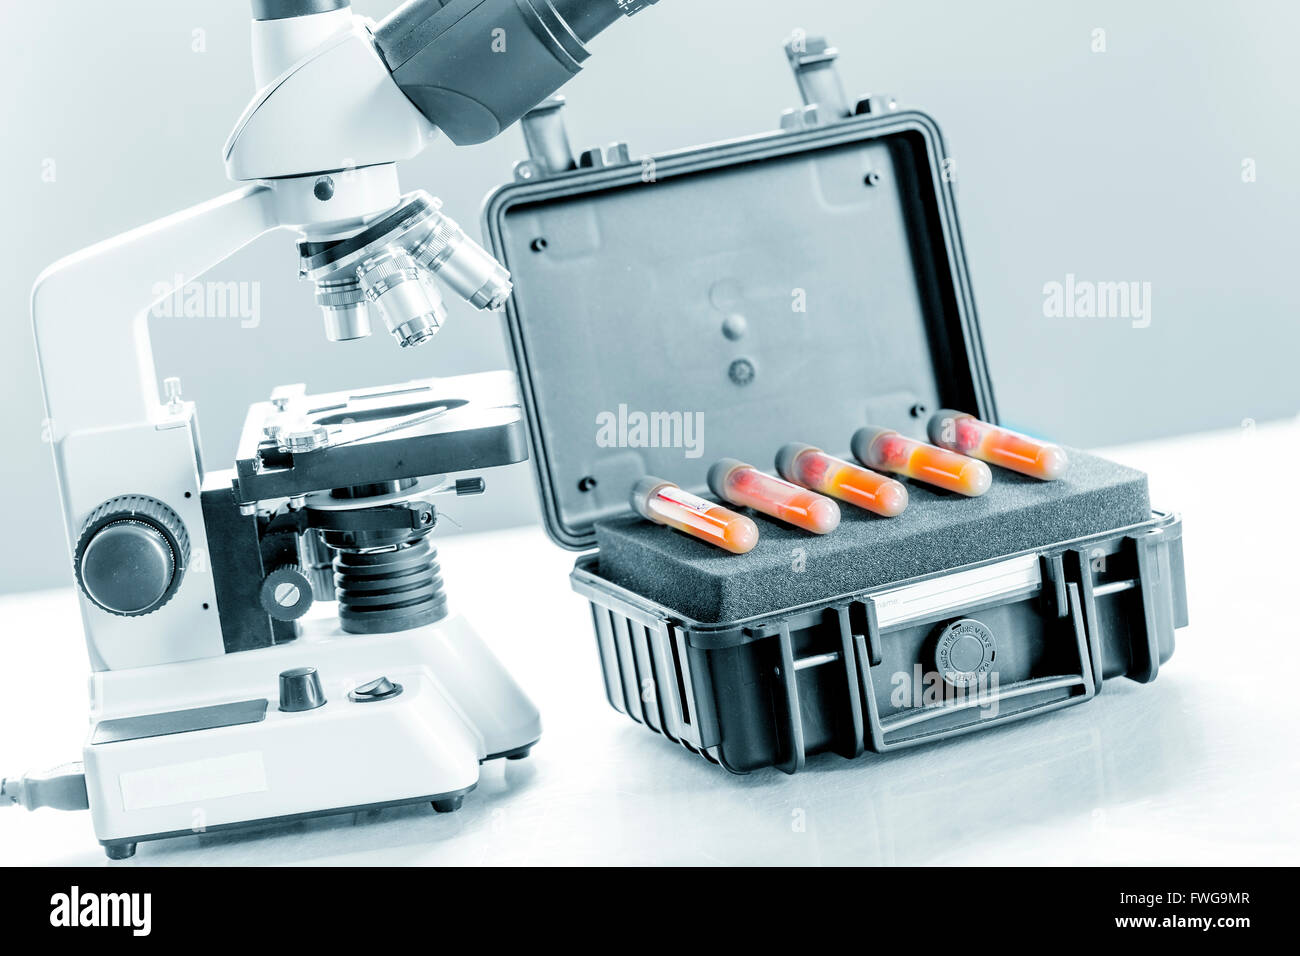 Infectious blood samples in a protective case. - Stock Image